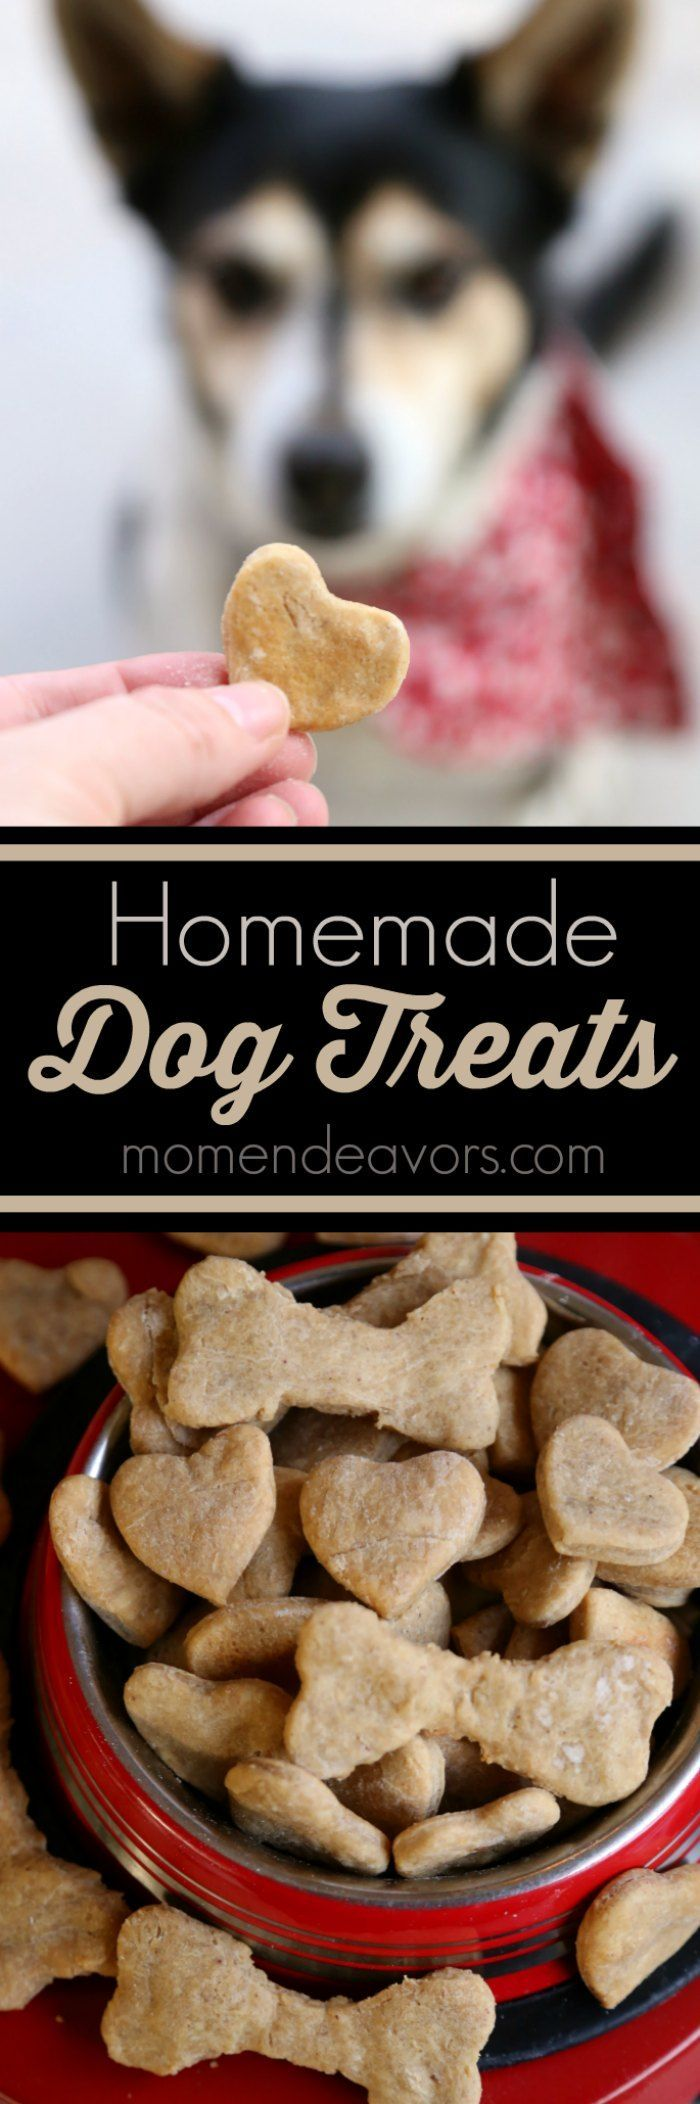 Homemade Dog Treats Recipe With Just 4 Ingredients, These Dog Biscuits Are  Easy To